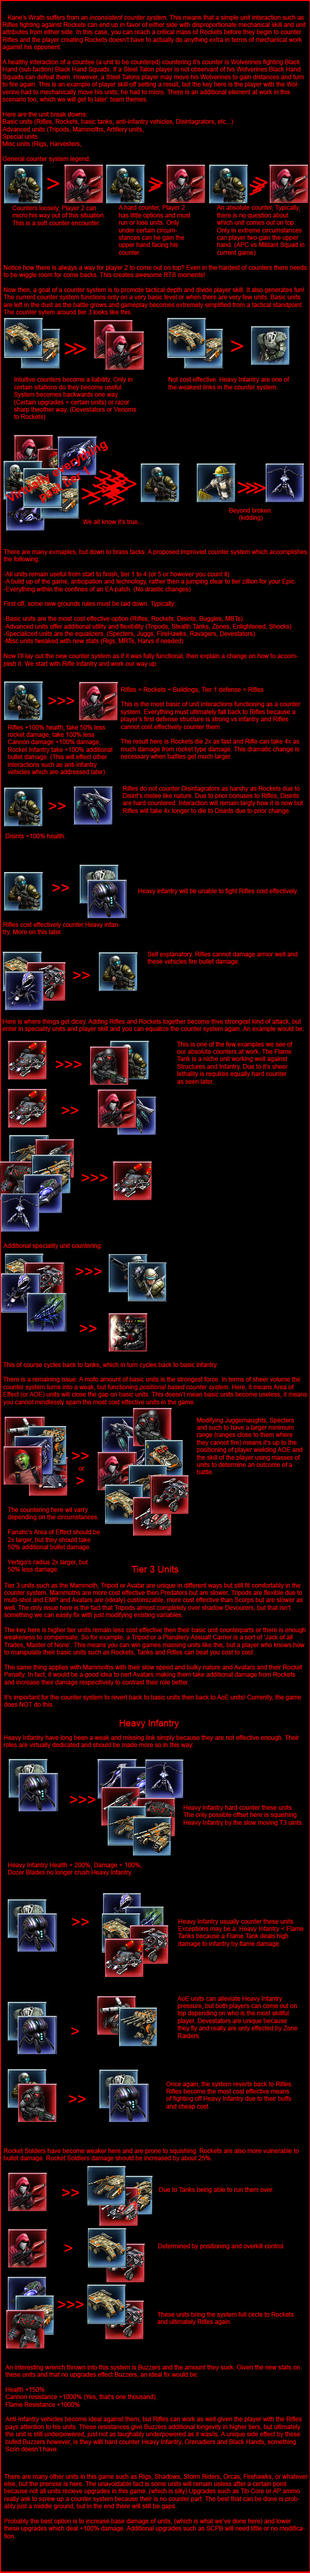 Kane's Wrath Counter System by Flopjack